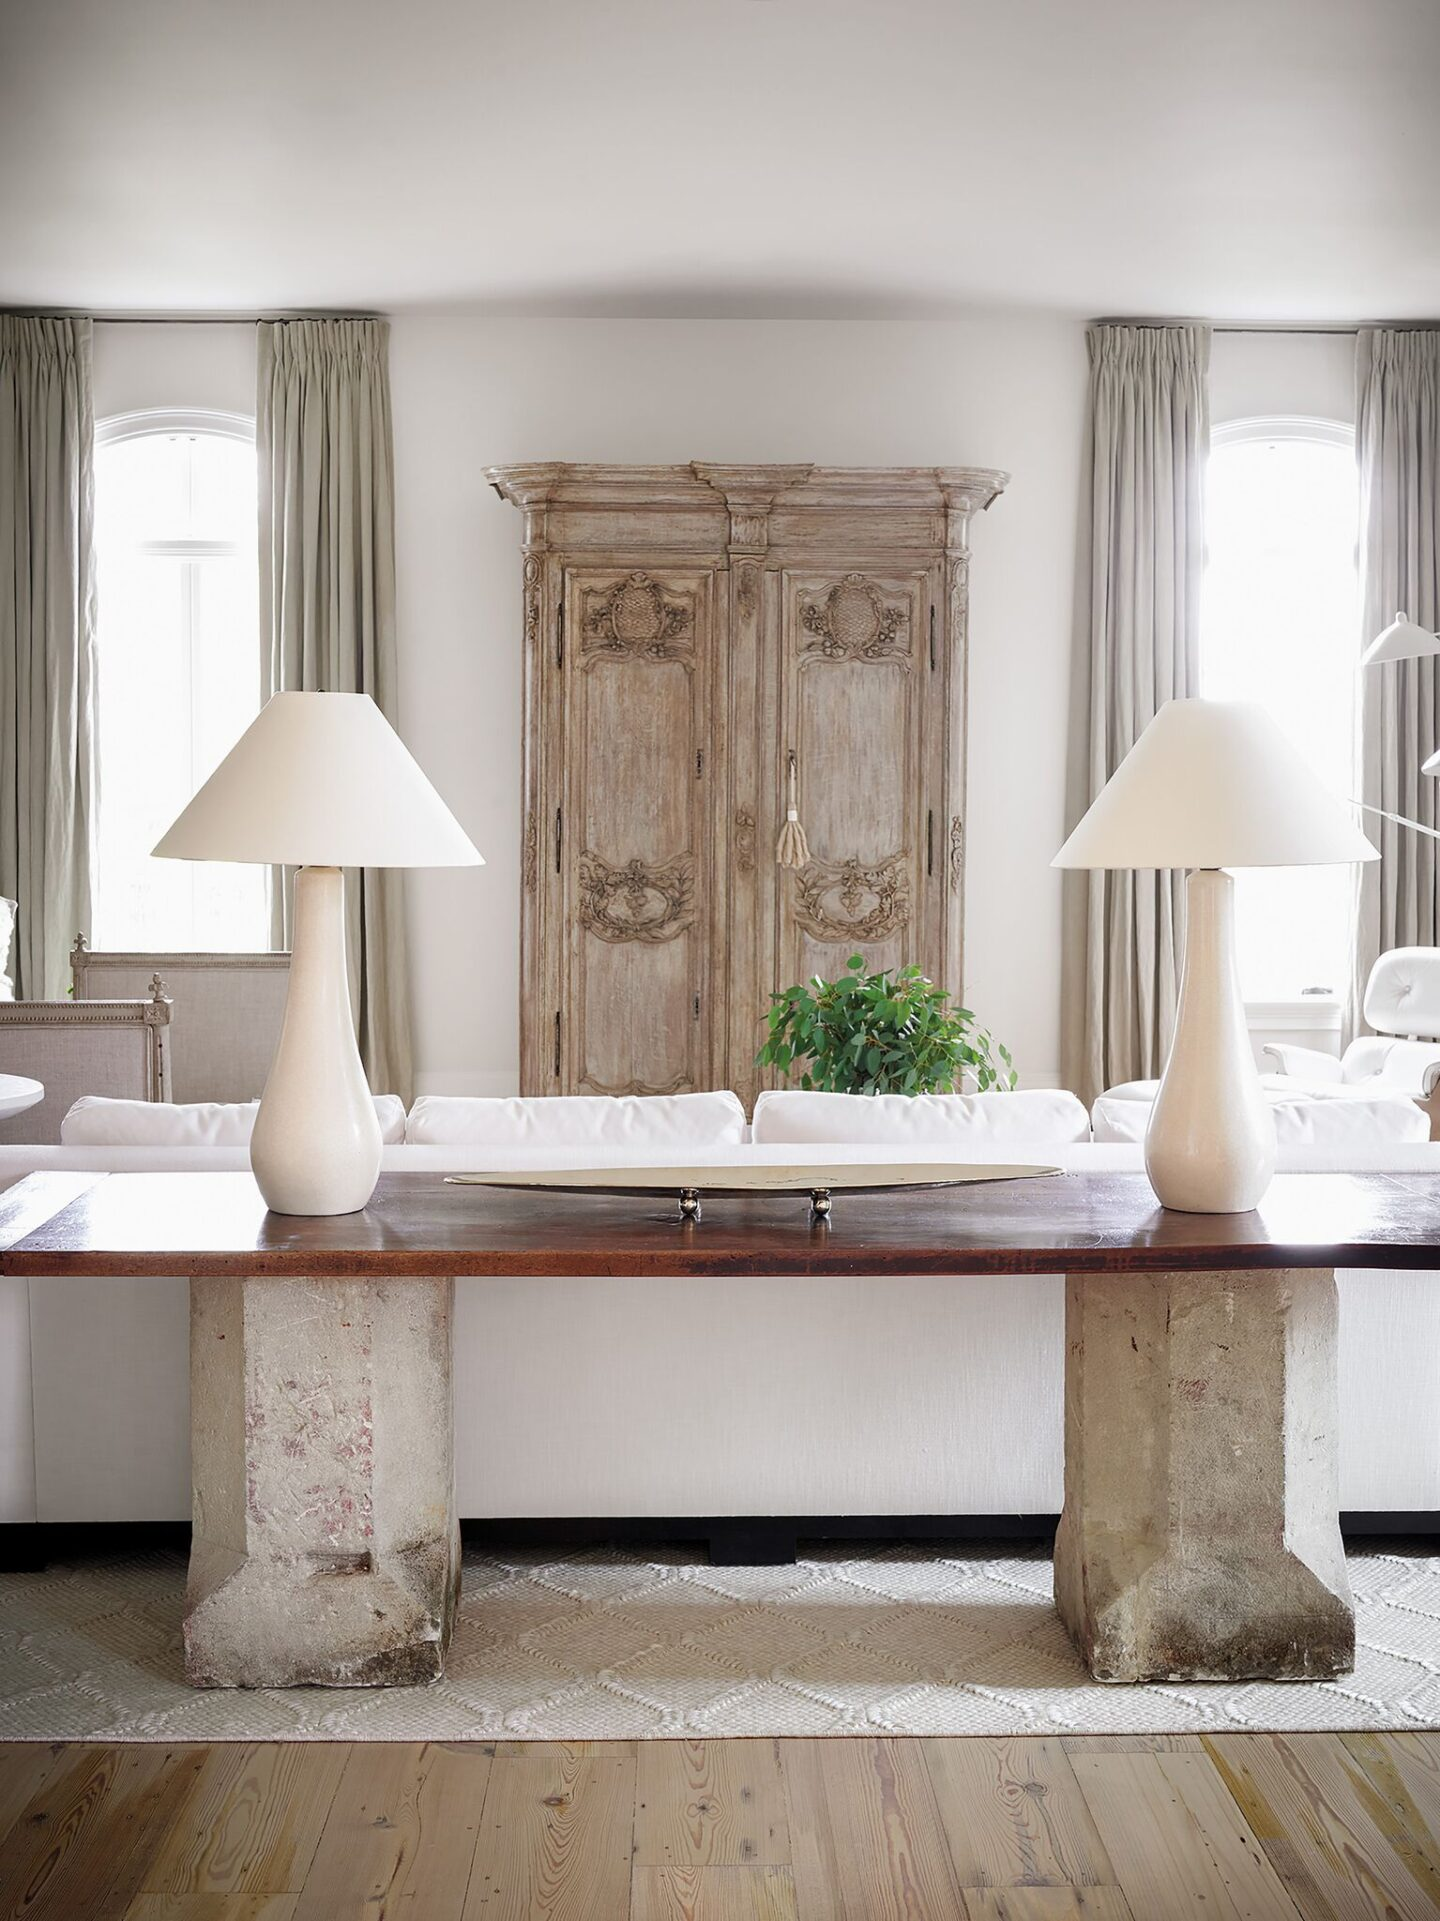 Antique 18th century sandstone garden plinths combine with a 19th century walnut plateau to form a custom console behind the sofa in a living area designed by Tara Shaw. #europeanantiques #oldworldstyle #modernfrench #tarashaw #livingroom #interiordesign